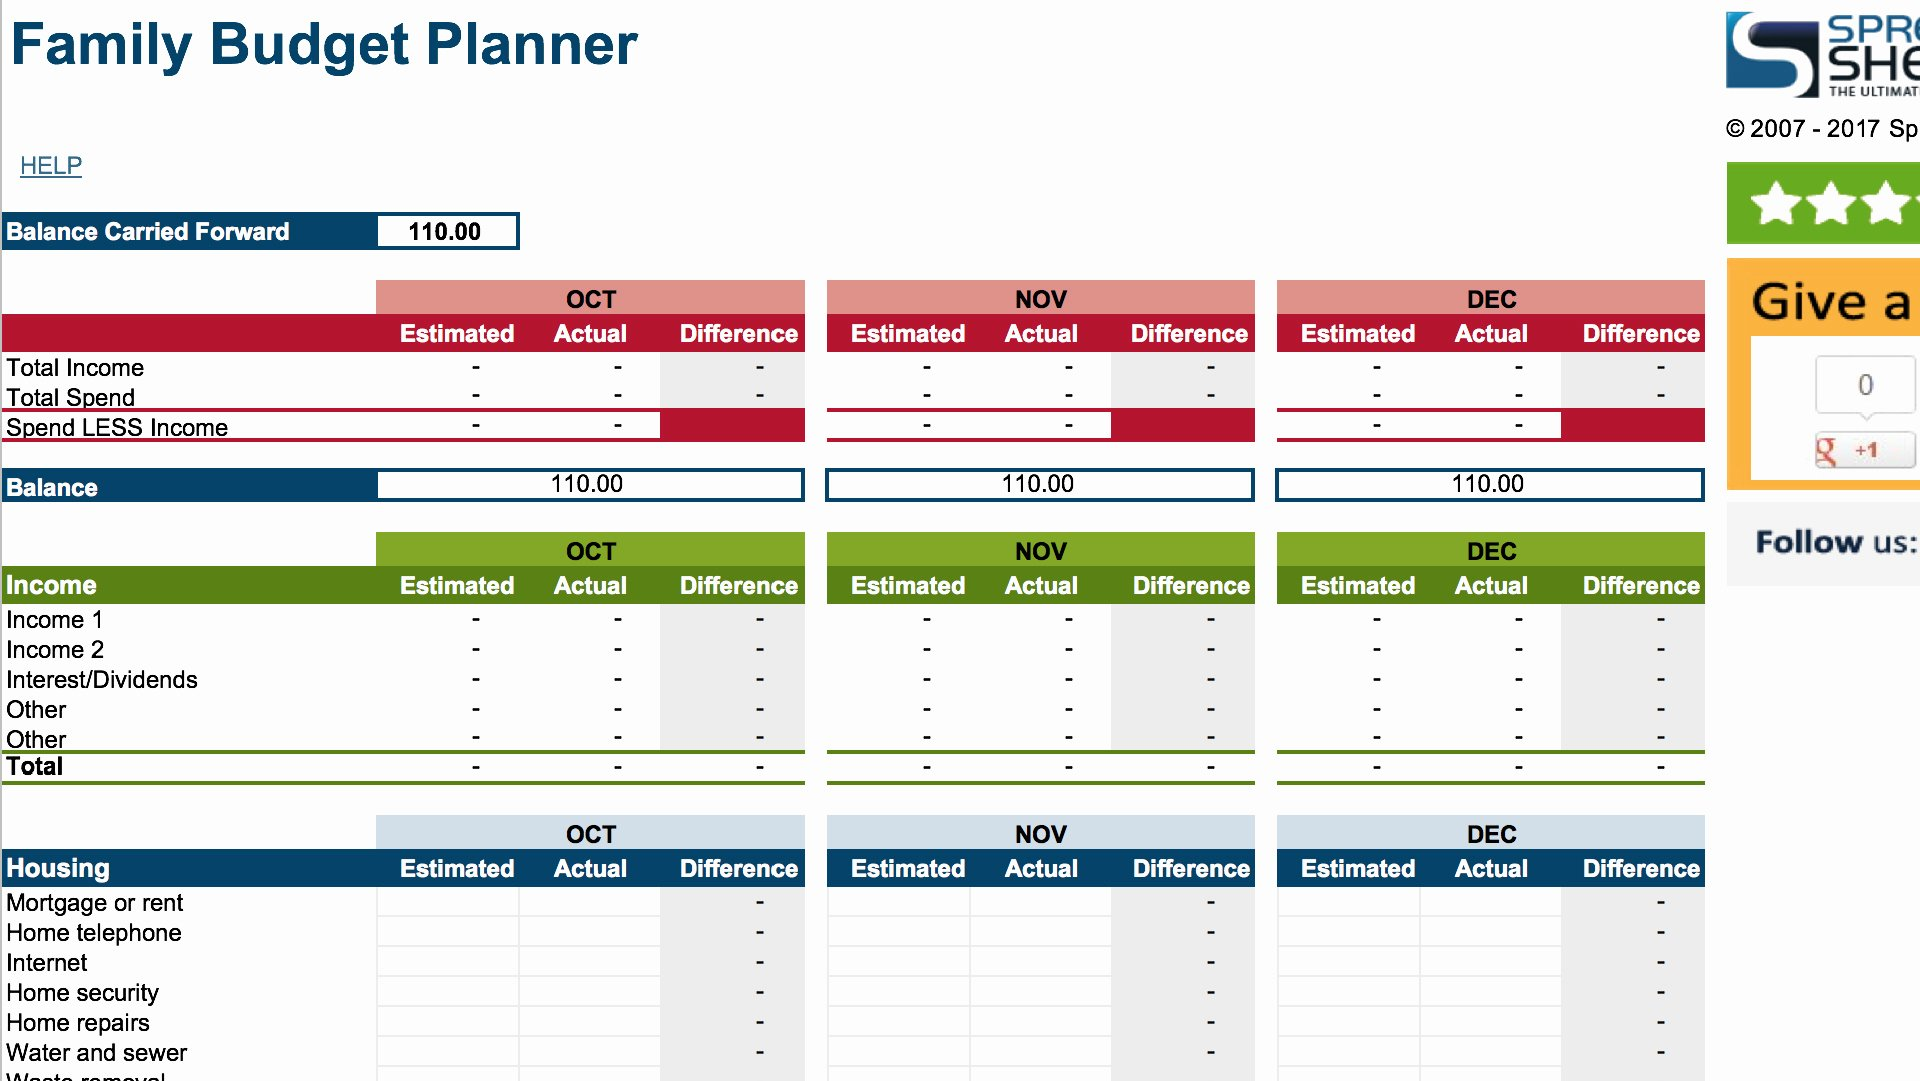 Family Budget Planner Template Inspirational 15 Easy to Use Bud Templates